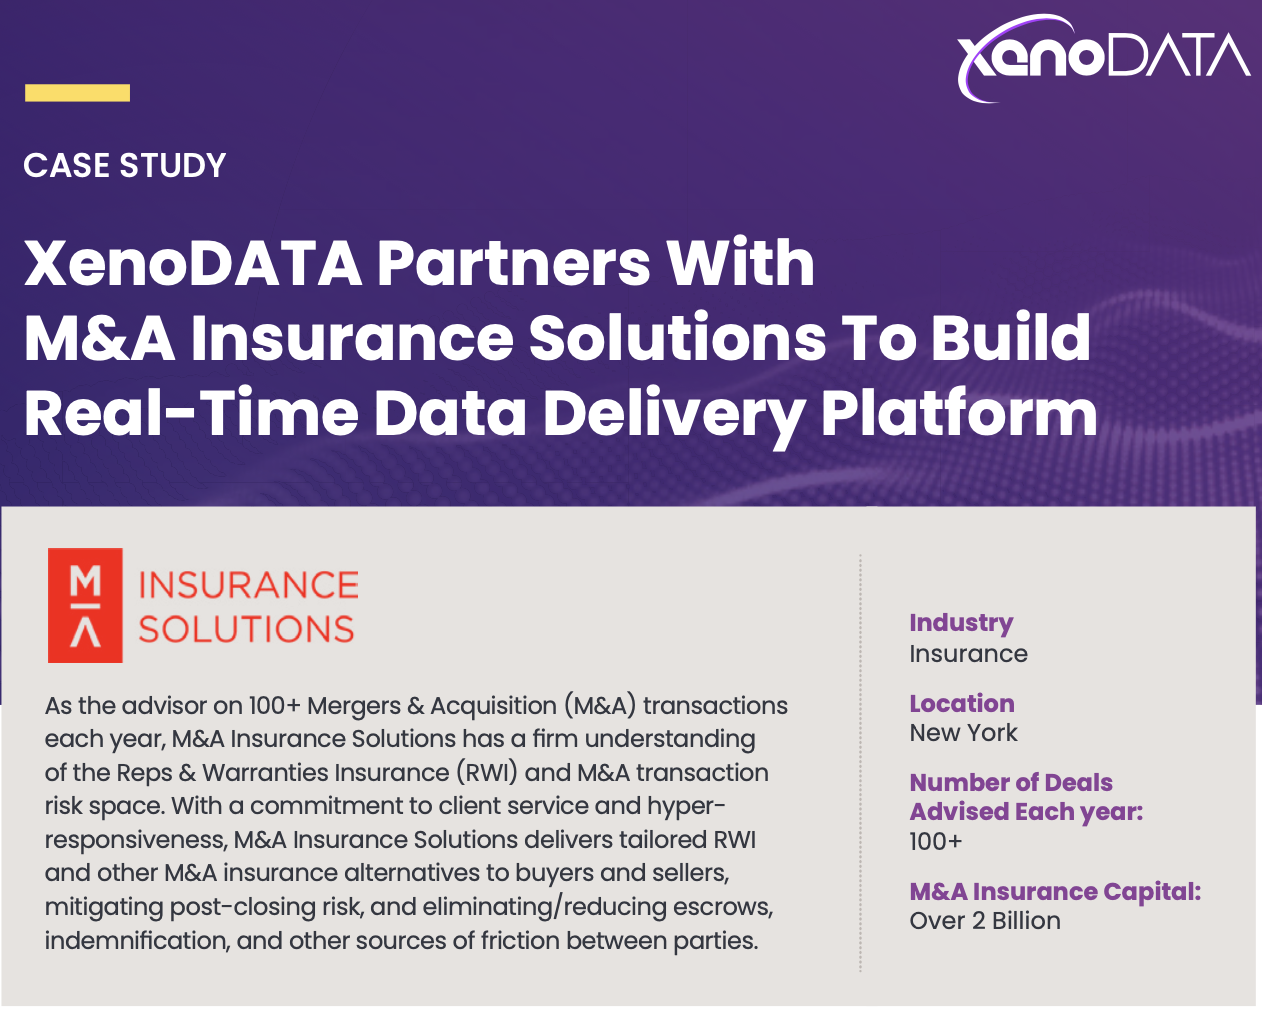 M&A Insurance Solutions Builds Real-Time Data Delivery Platform